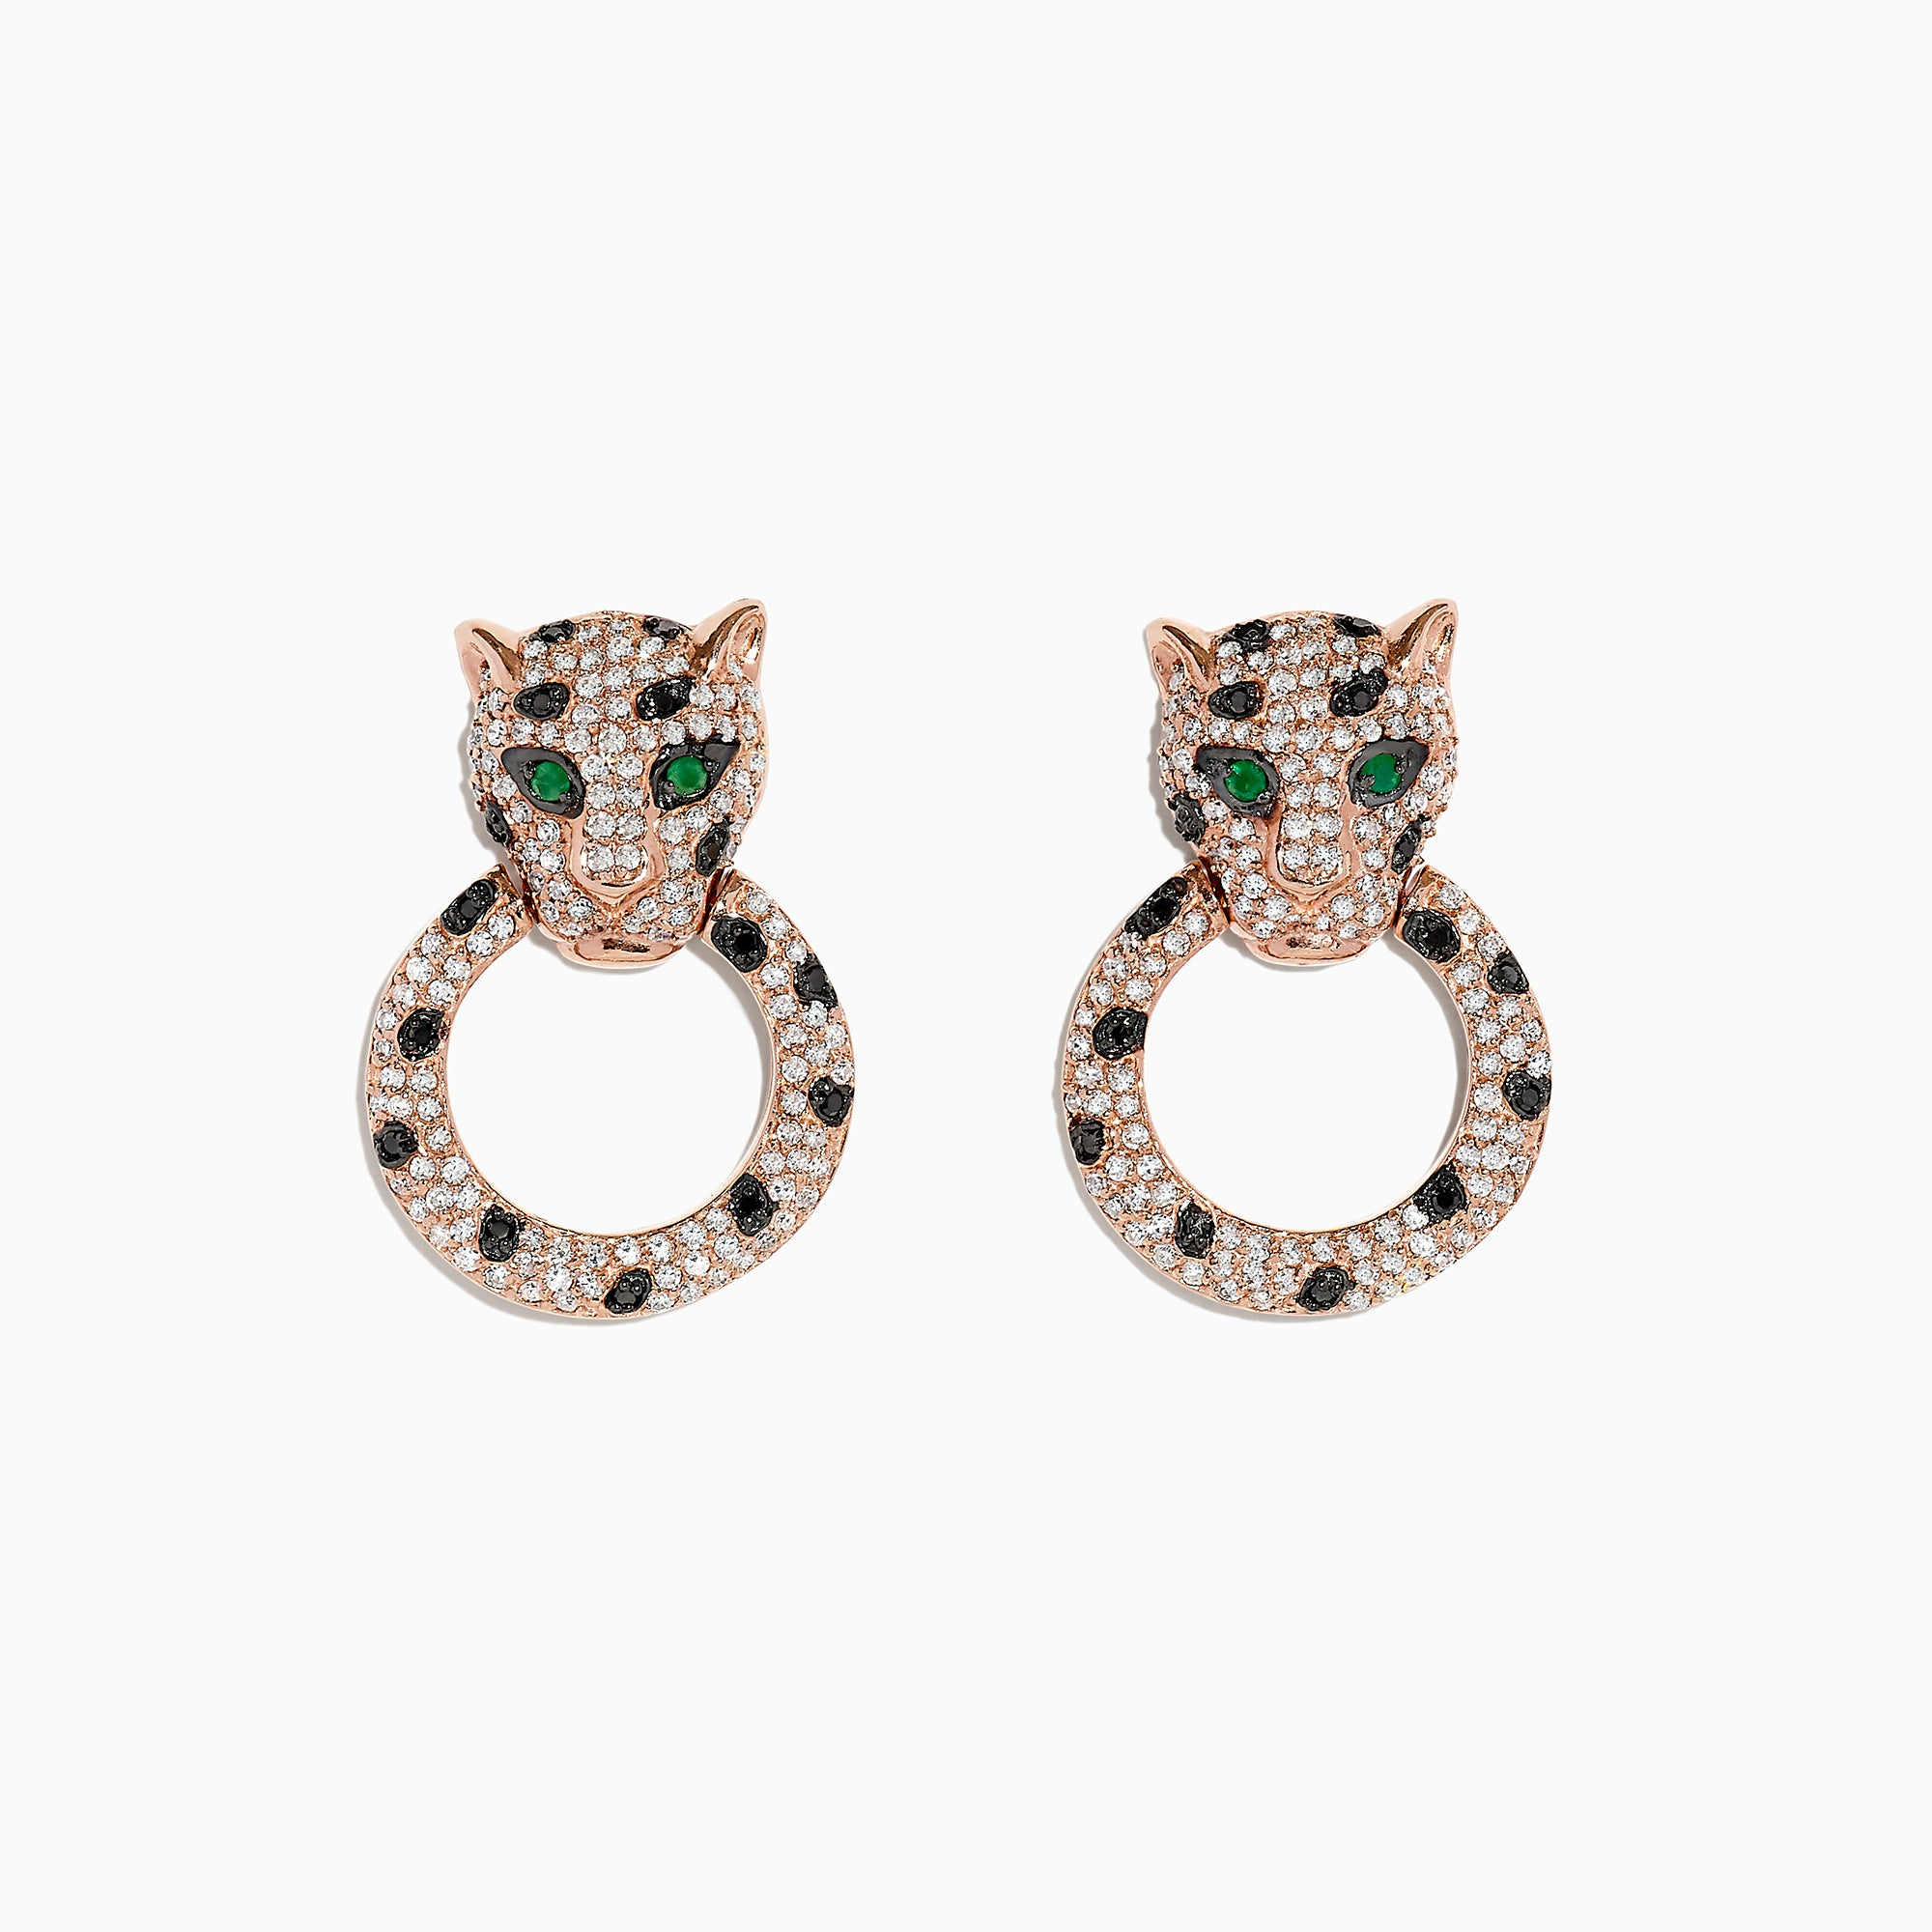 Effy Signature 14K Rose Gold Diamond and Emerald Earrings, 1.57 TCW